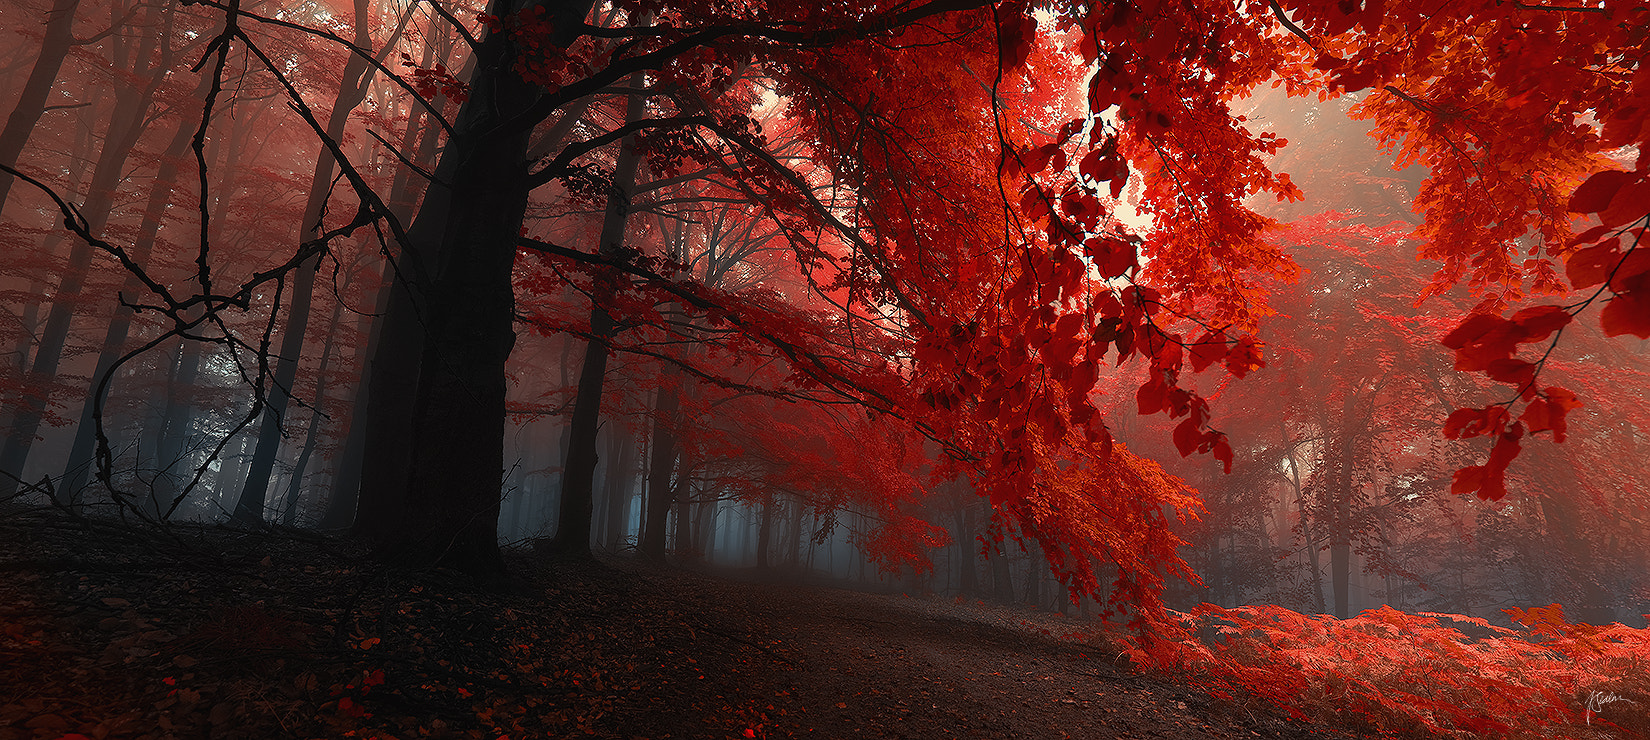 Photograph Sacred shivers by Janek Sedlar on 500px